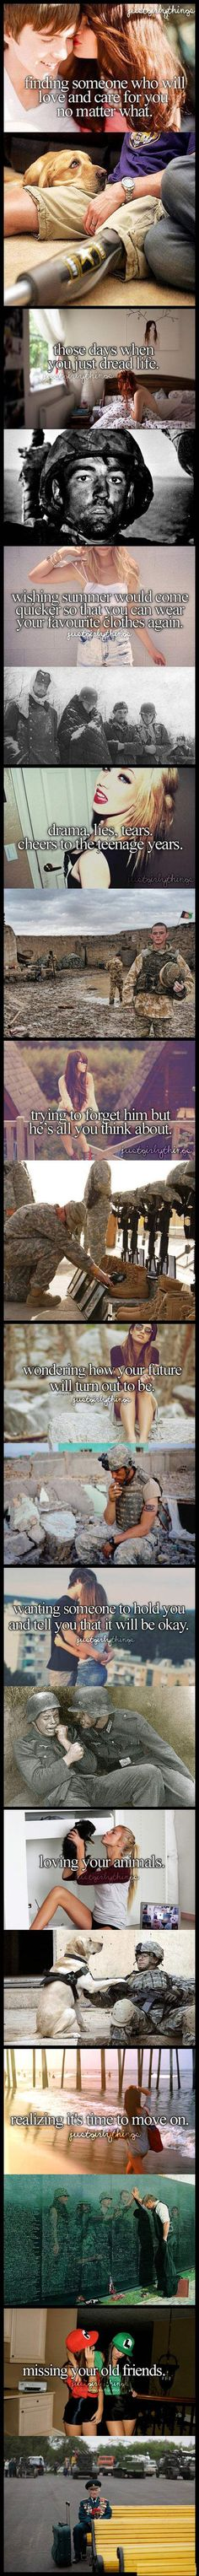 I'm glad someone did this. It really puts perspective on these stupid teenager posts! God bless our troops